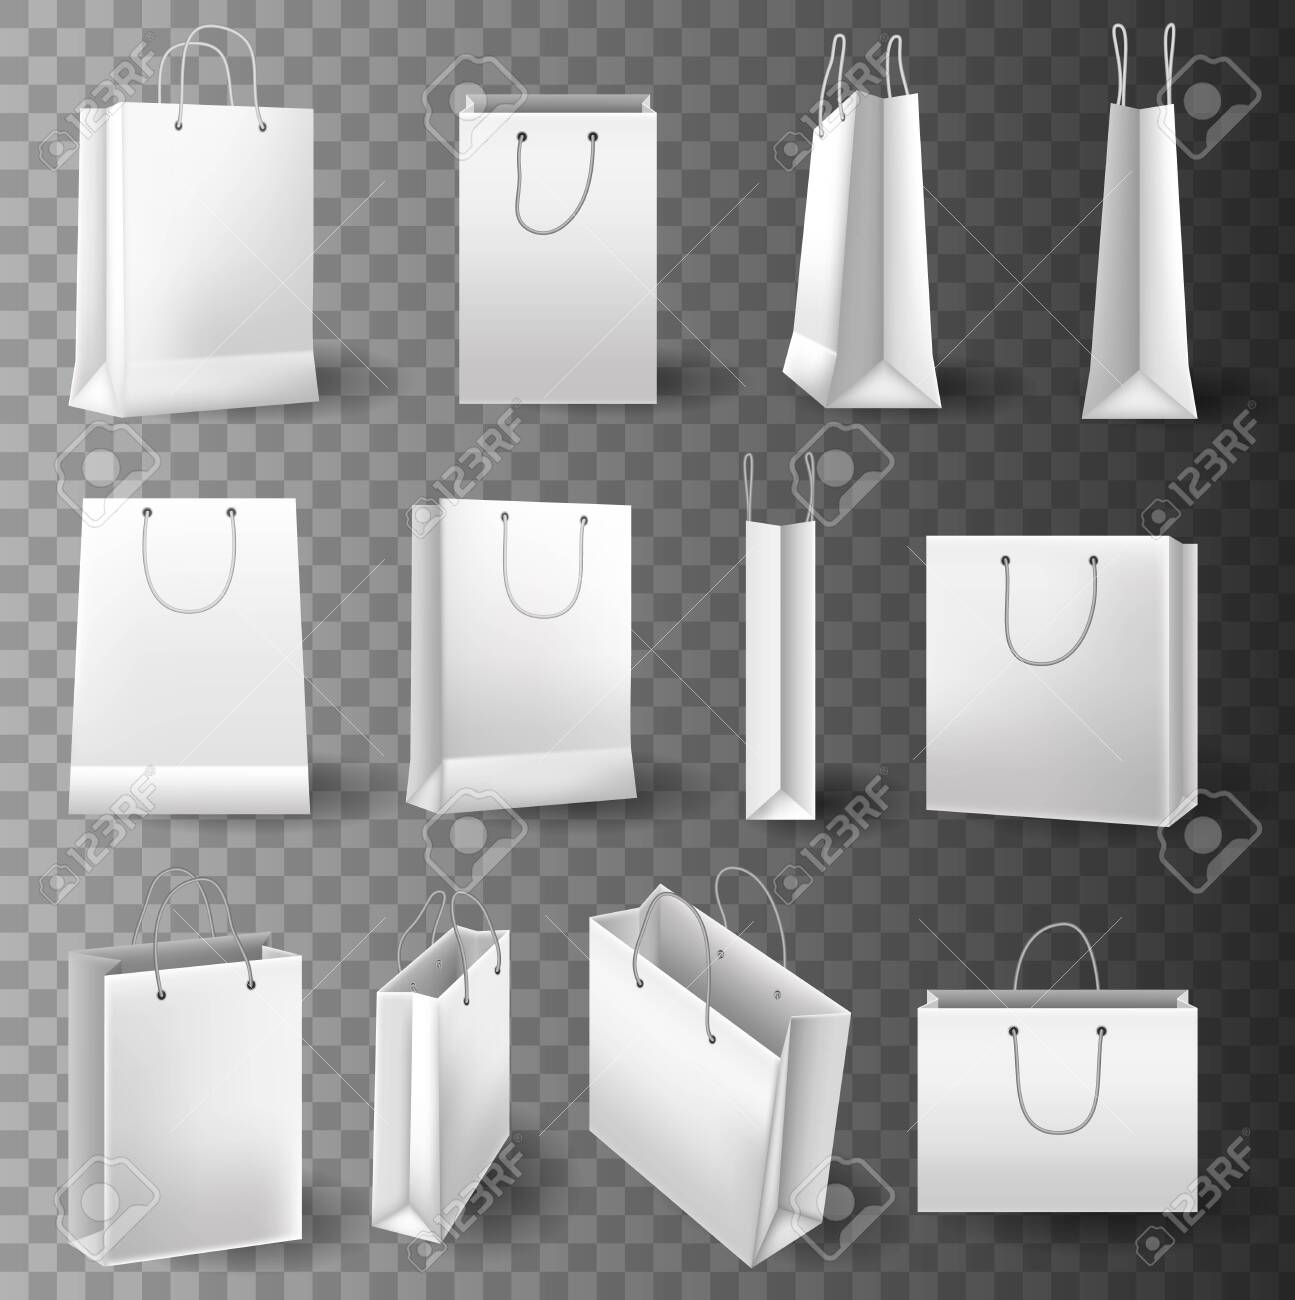 Realistic tote shopping bag mock up template for corporate identity isolated vector illustration on transparent background. Set Of Mockup Of Realistic White Paper Bag Paper Shopping Bag Mockup Set For Branding And Corporate Identity Design Square And Horisontal Paper Shopping Bag Royalty Free Cliparts Vectors And Stock Illustration